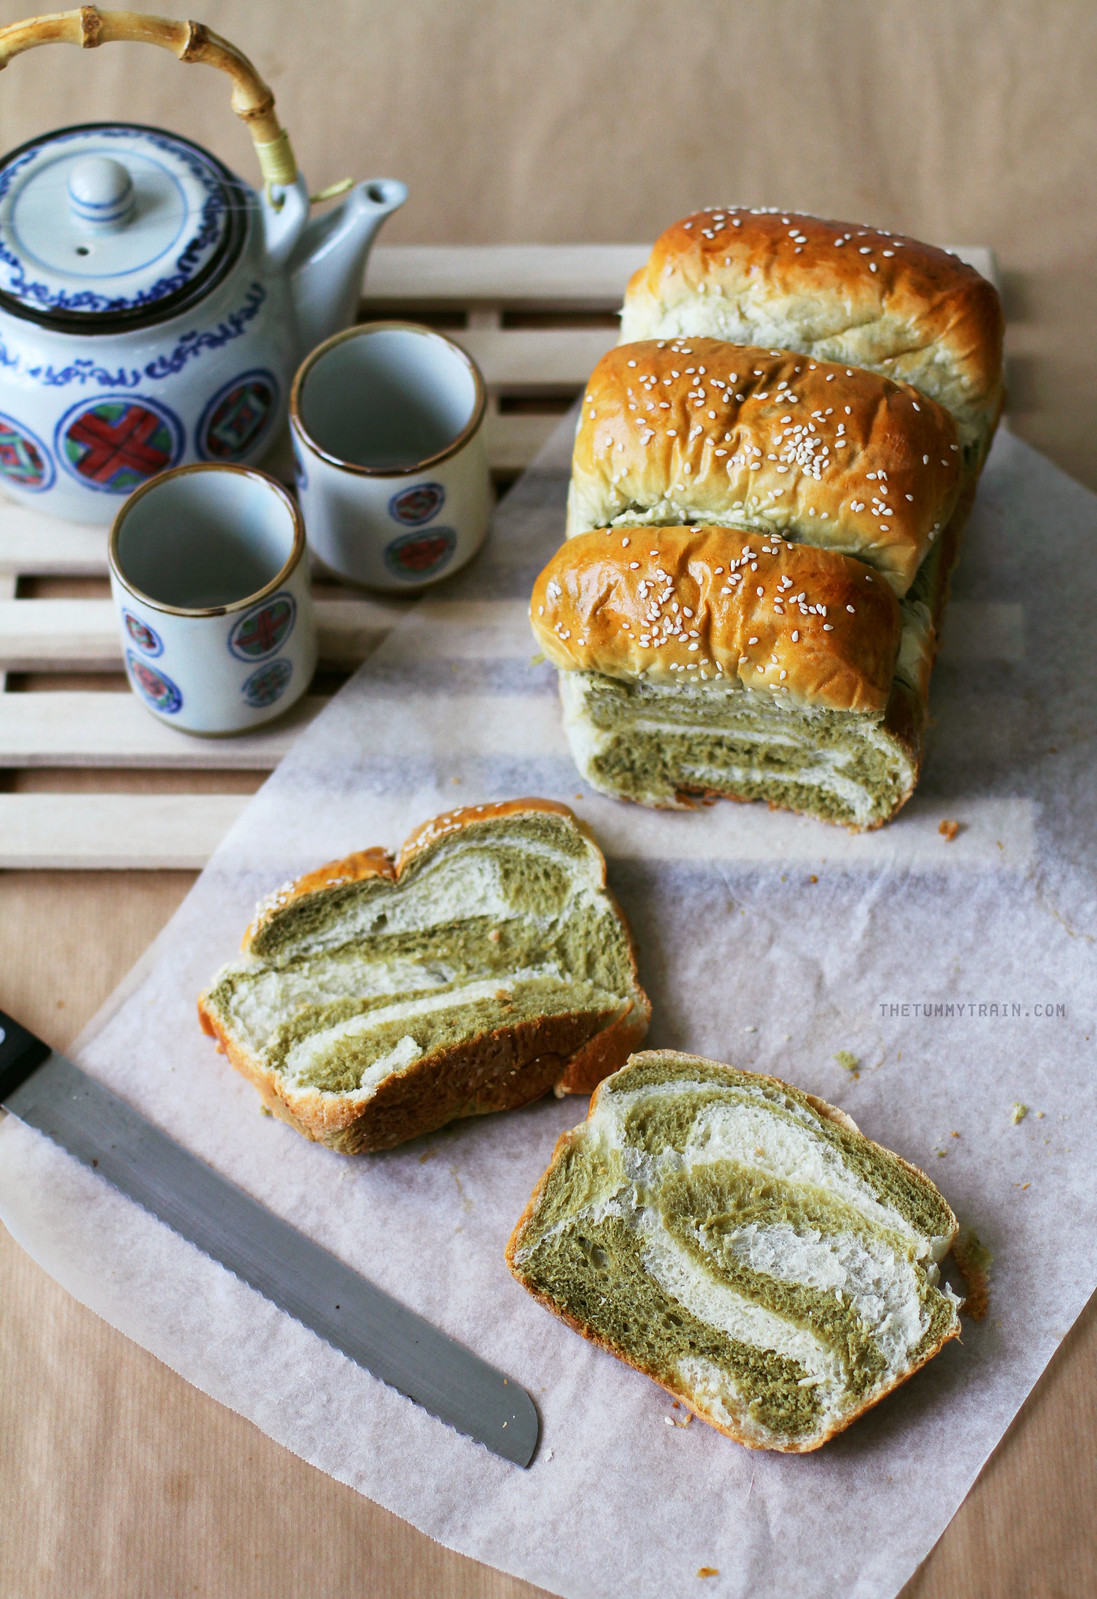 29521345720 3105f29b89 h - The pleasures of making a Matcha-Milk Tangzhong Bread [VIDEO]